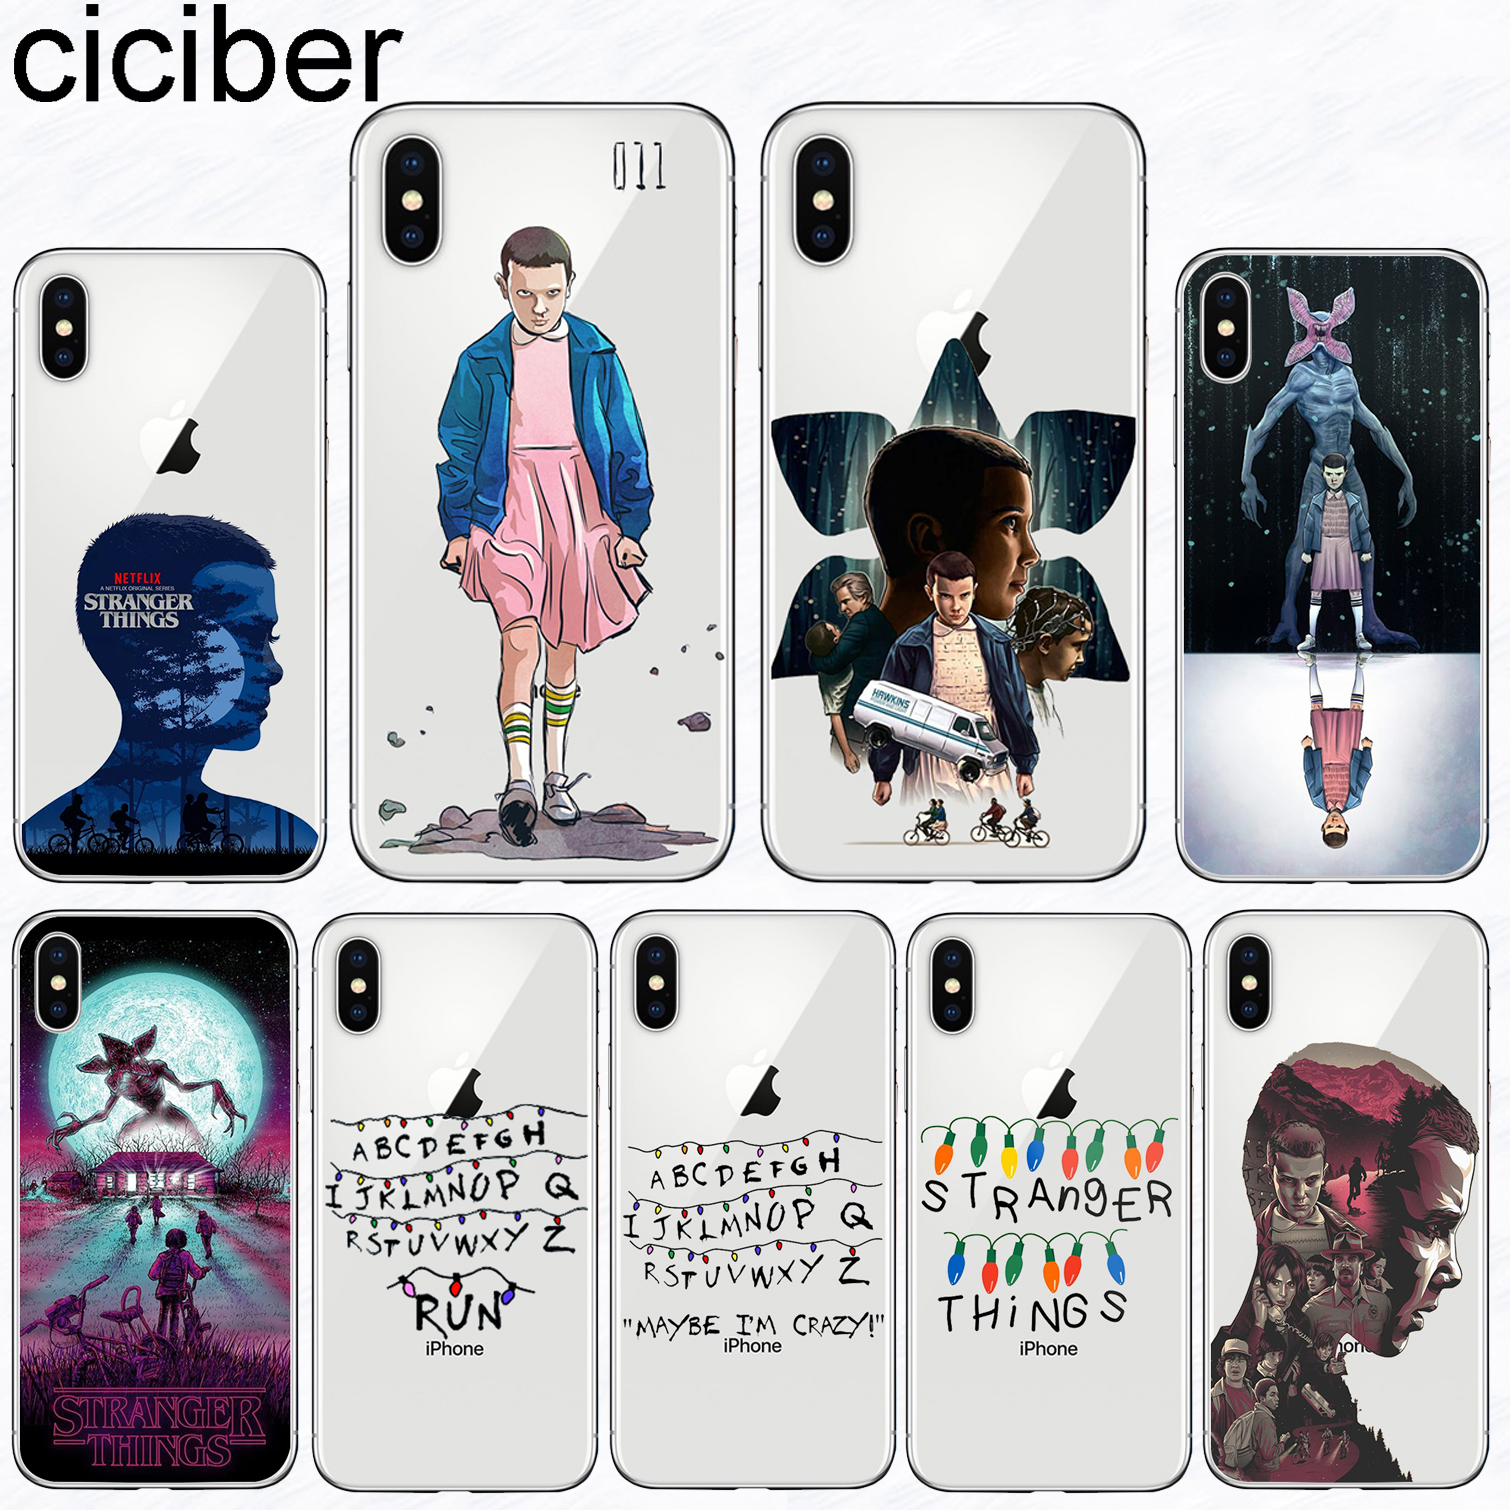 ciciber <font><b>Phone</b></font> <font><b>Case</b></font> for <font><b>iPhone</b></font> 11 Pro Max Soft Silicone TPU Cover For <font><b>Iphone</b></font> <font><b>XR</b></font> 8 7 6 S Plus 5S SE X XS MAX <font><b>Stranger</b></font> <font><b>Things</b></font> Coque image